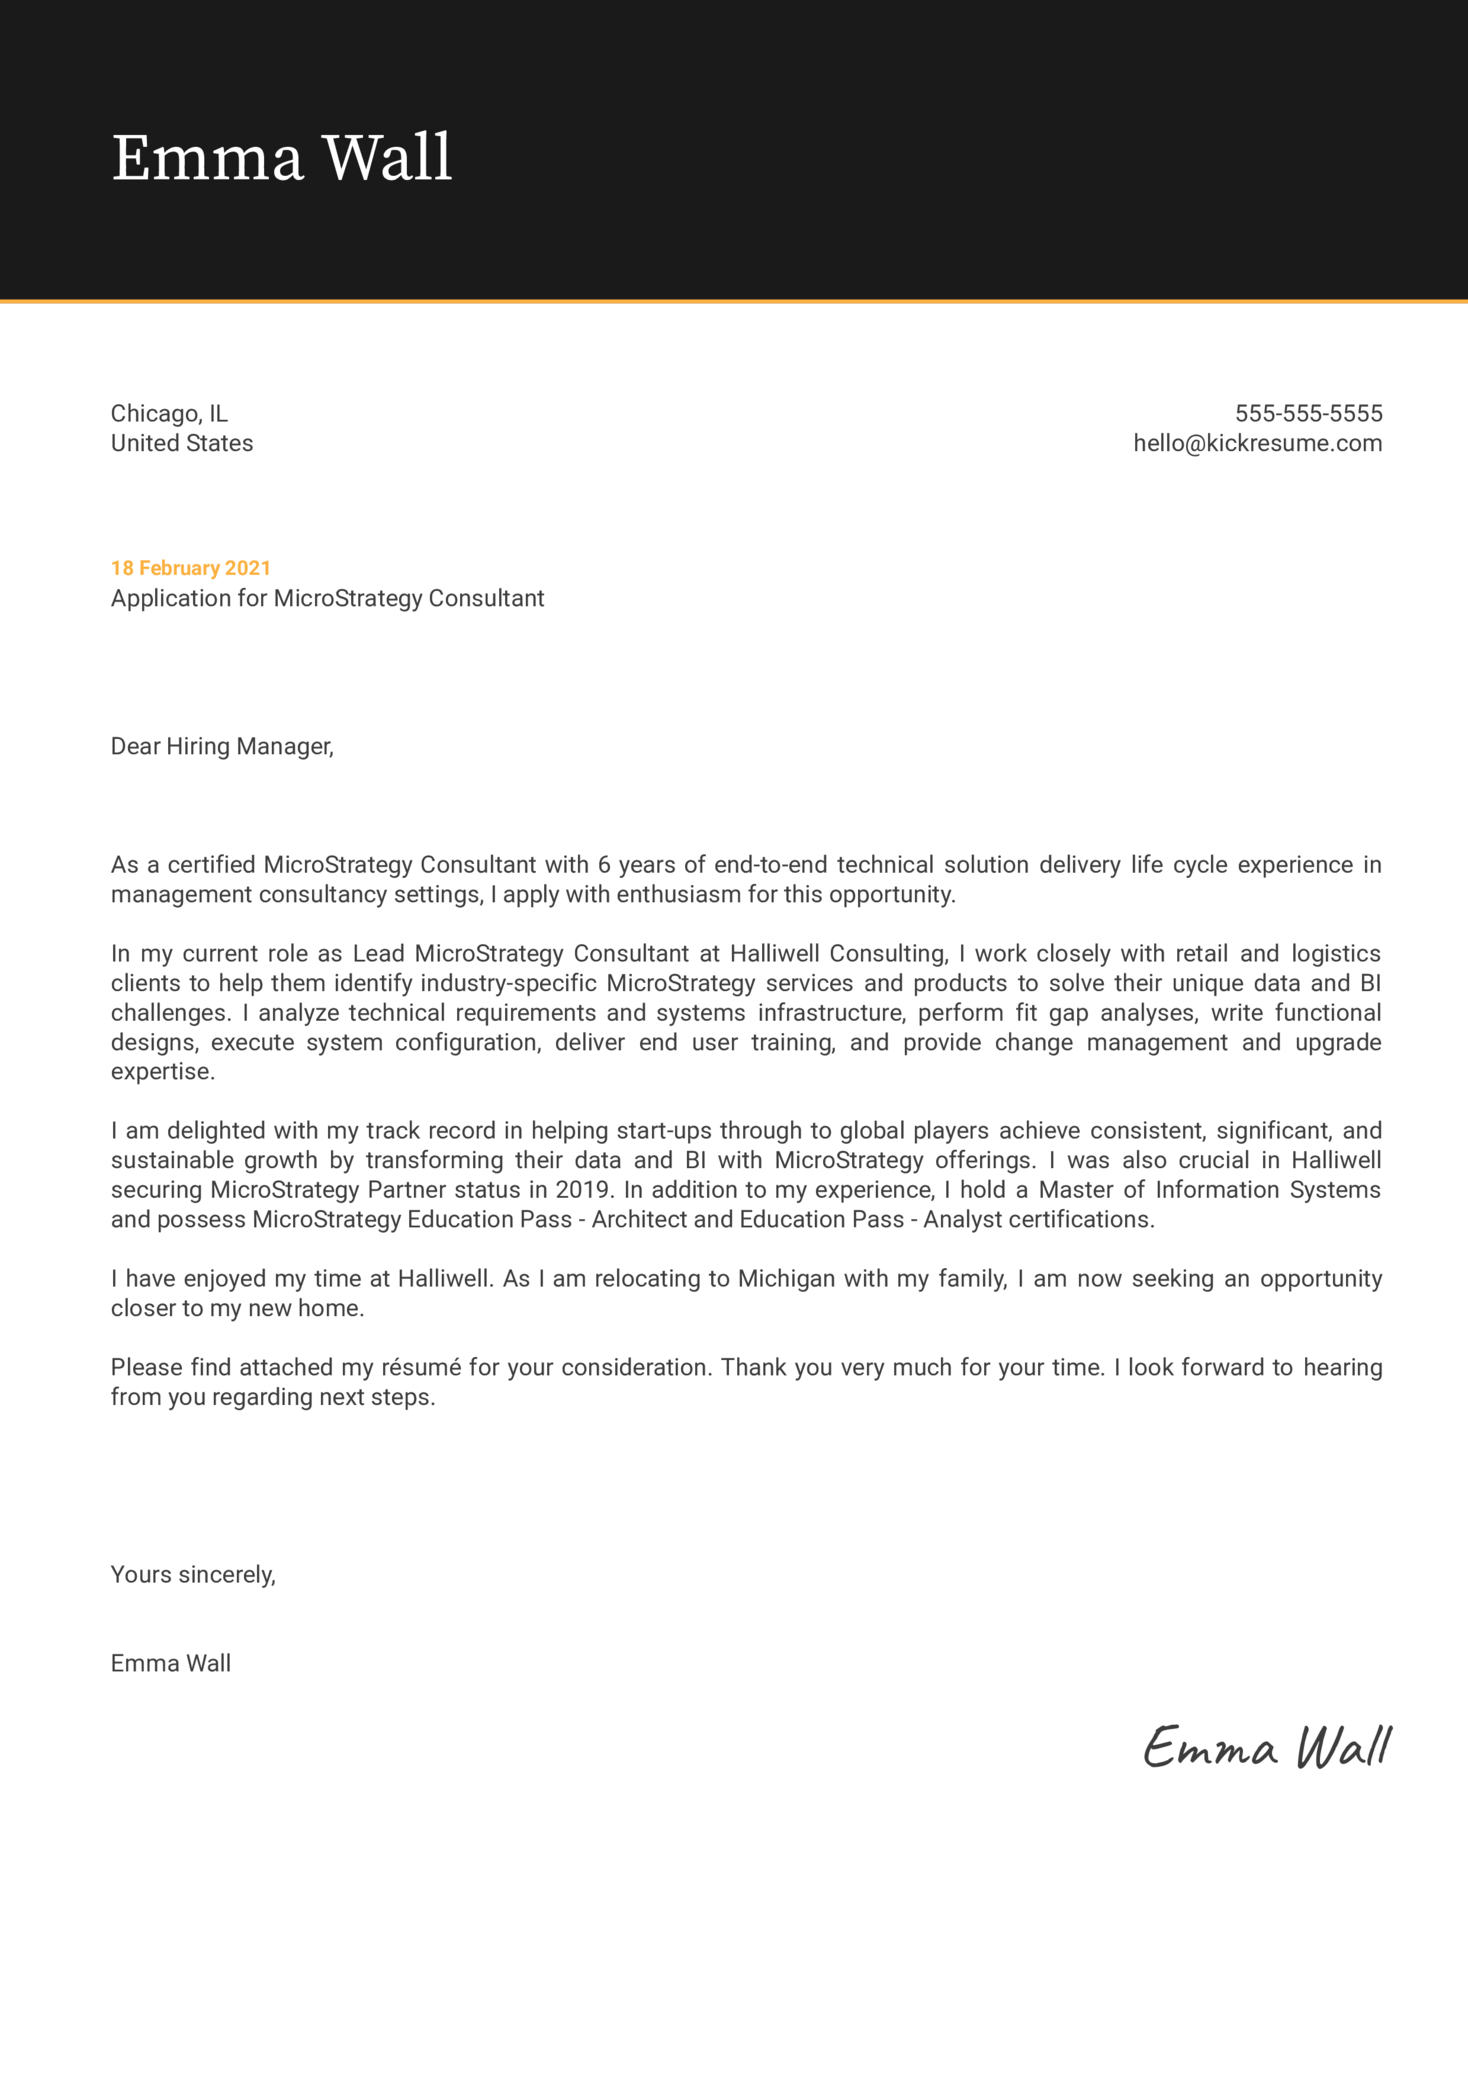 MicroStrategy Consultant Cover Letter Example